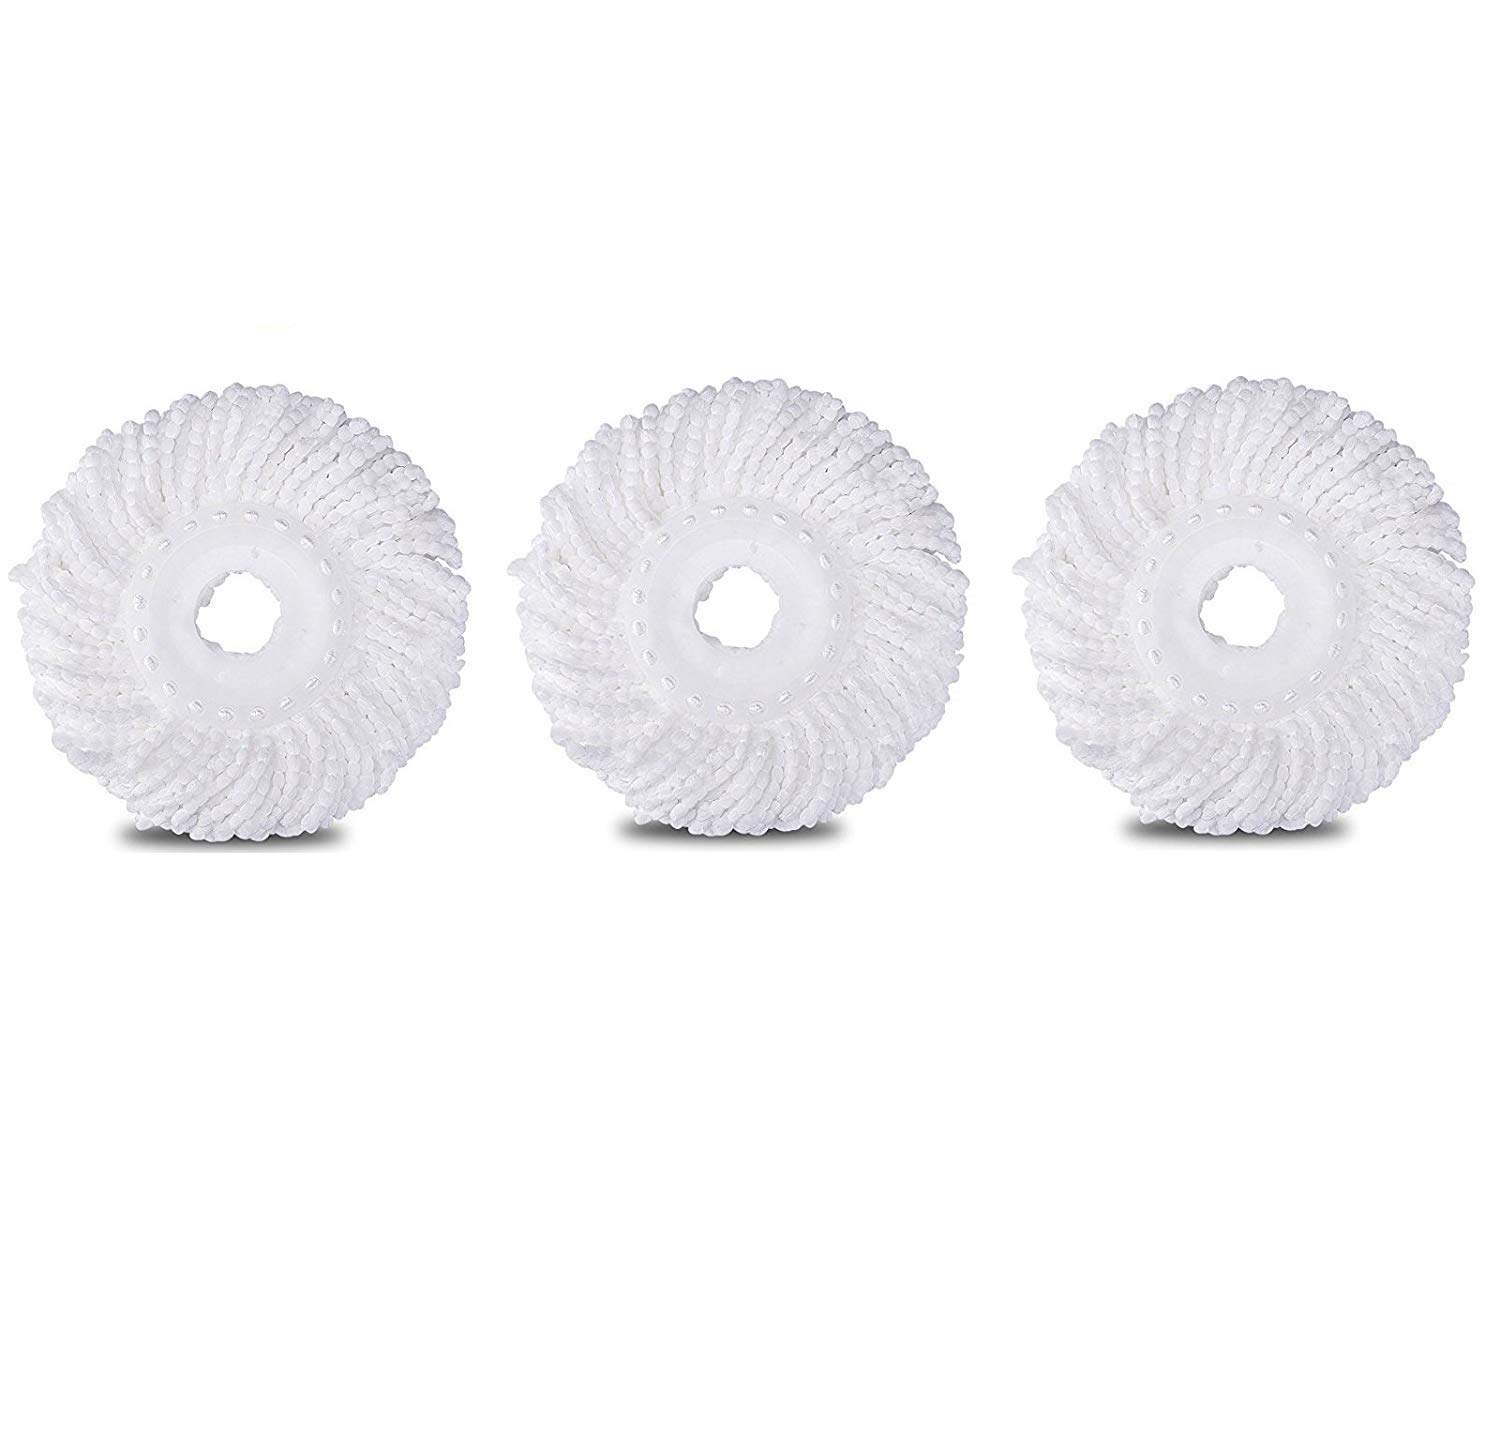 3 Pack Spin Mop Replacement Head, Round Shape Standard Size Microfiber Mop Head Refills for Hurricane Mopnado EGOFLEX Hapinnex Casabella and Other Brand Spin Mop Systems